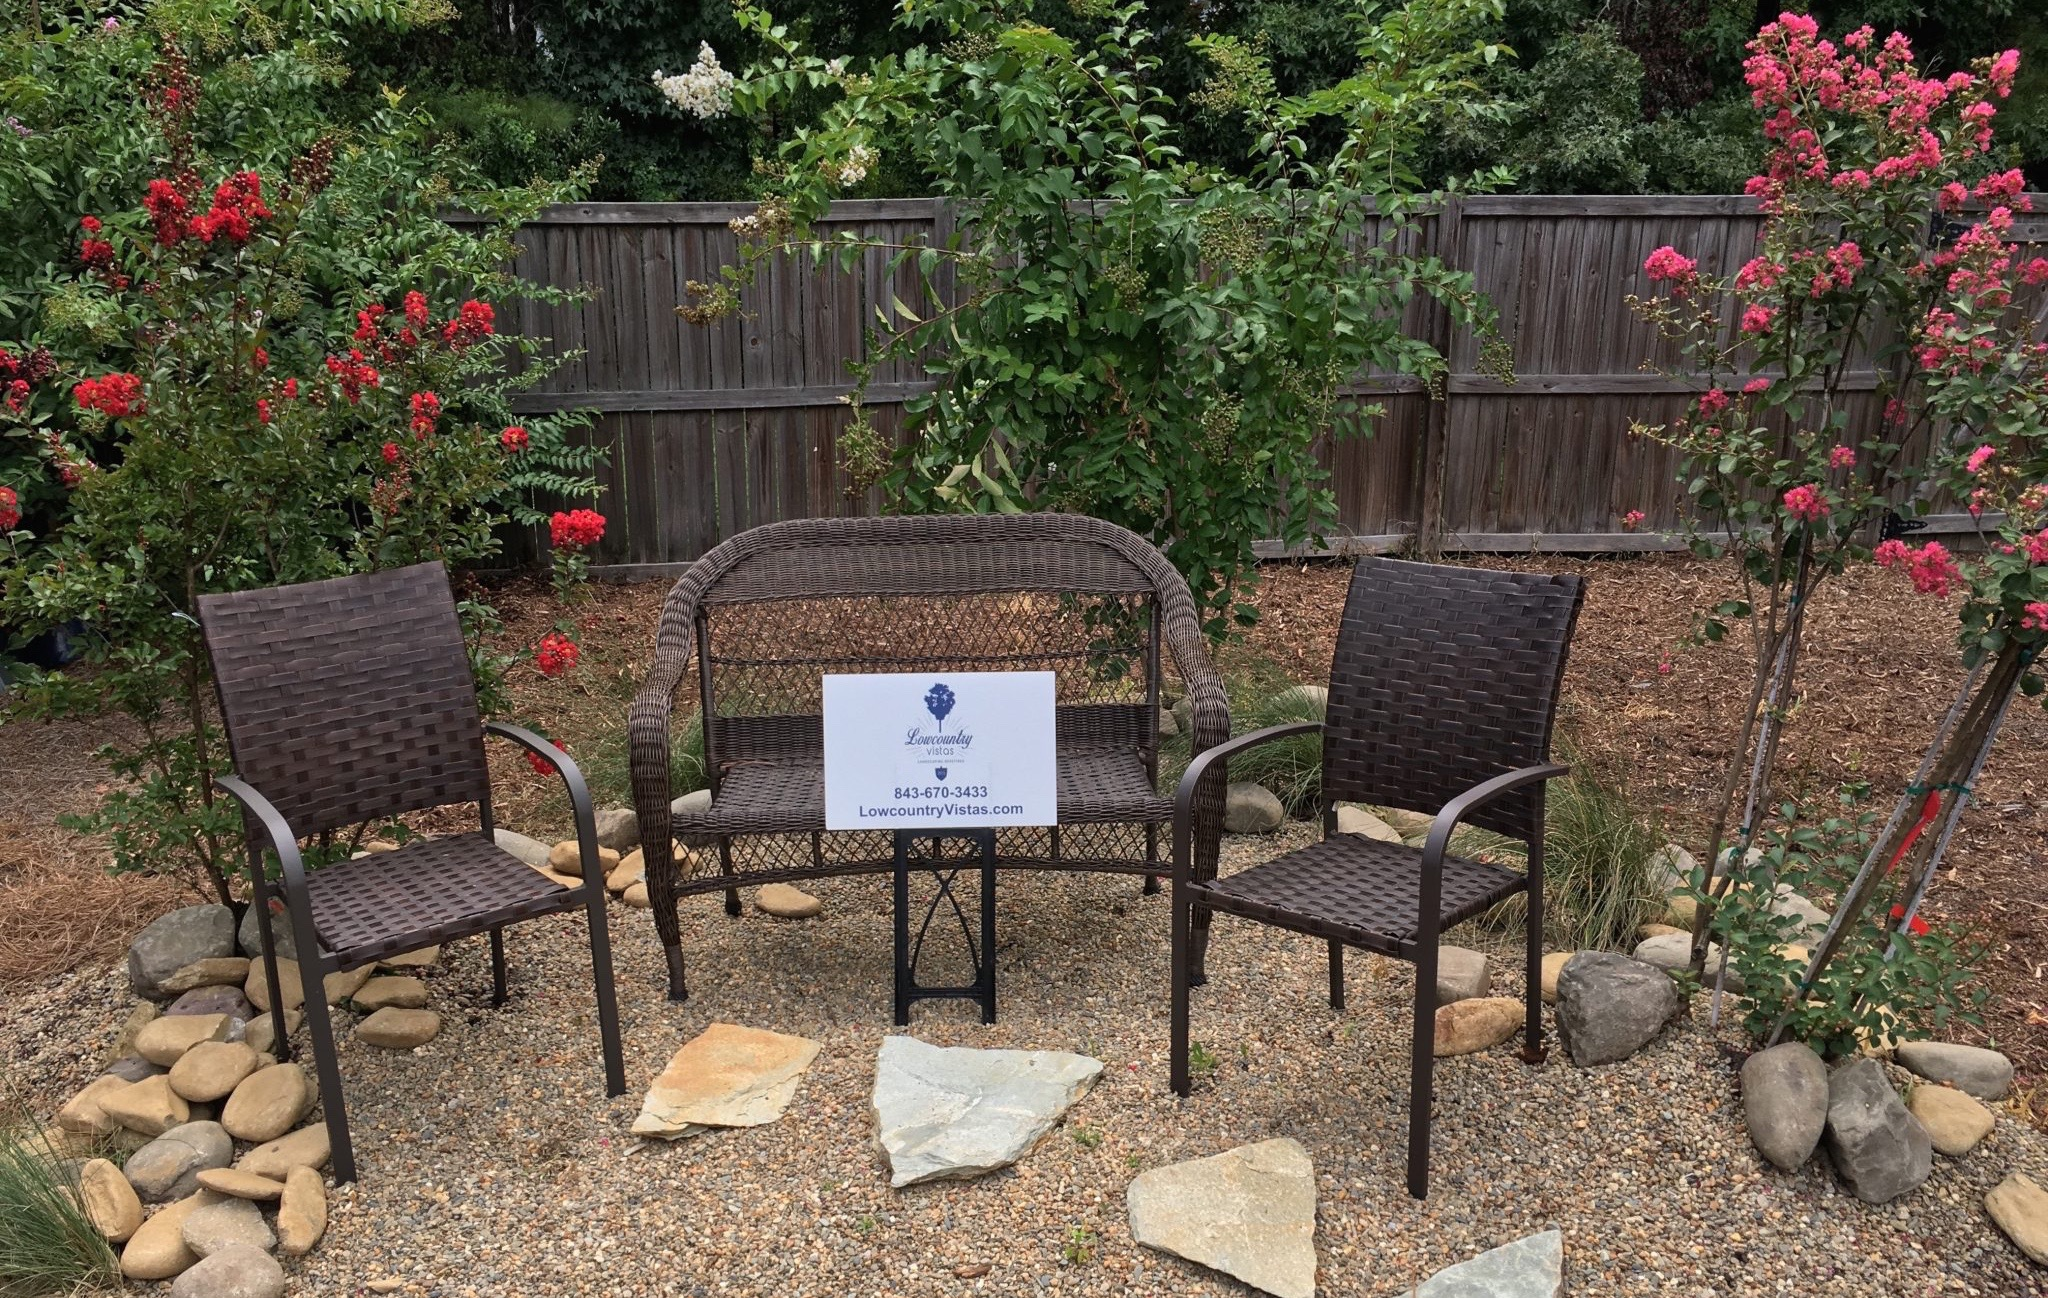 reviews of lowcountry vistas and landscape design